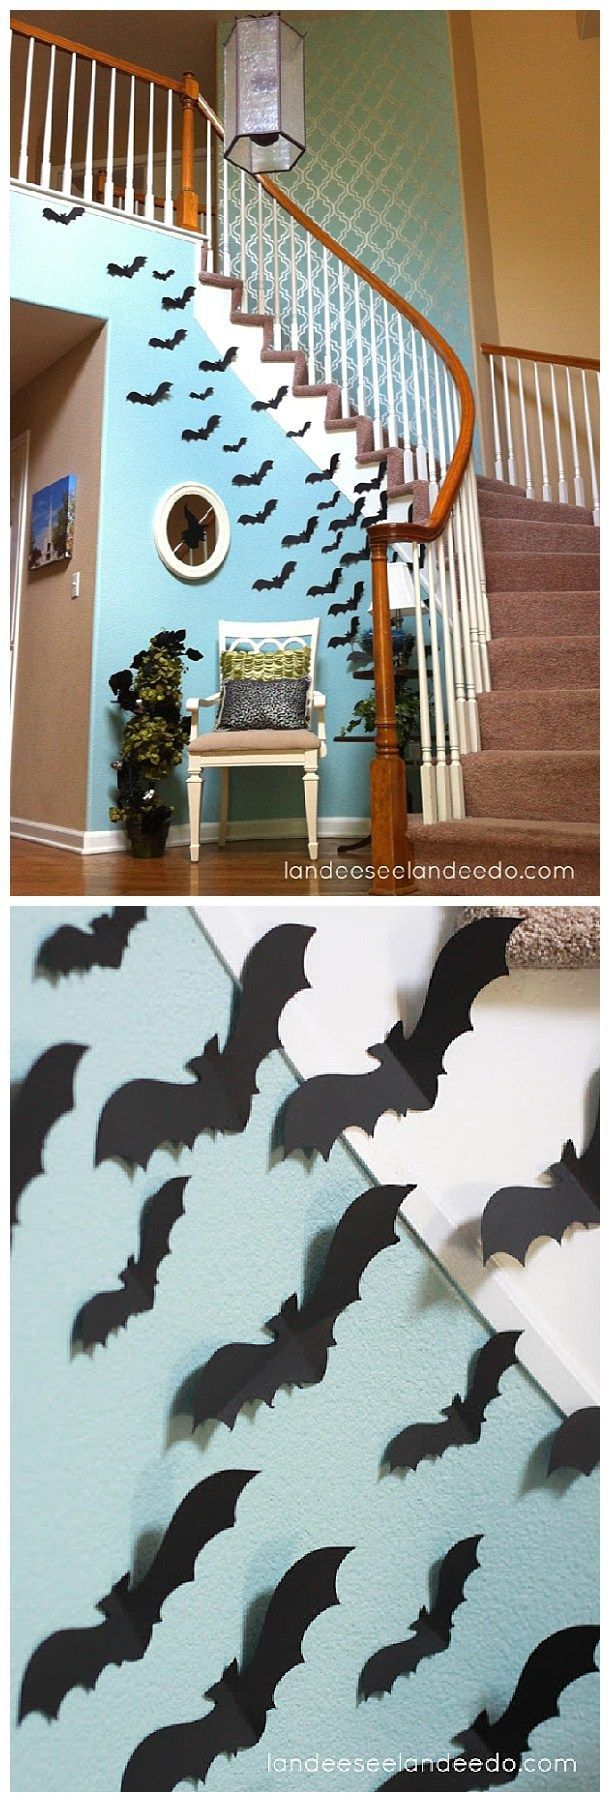 150 best Halloween Decor images on Pinterest Halloween decorations - Do It Yourself Halloween Decorations